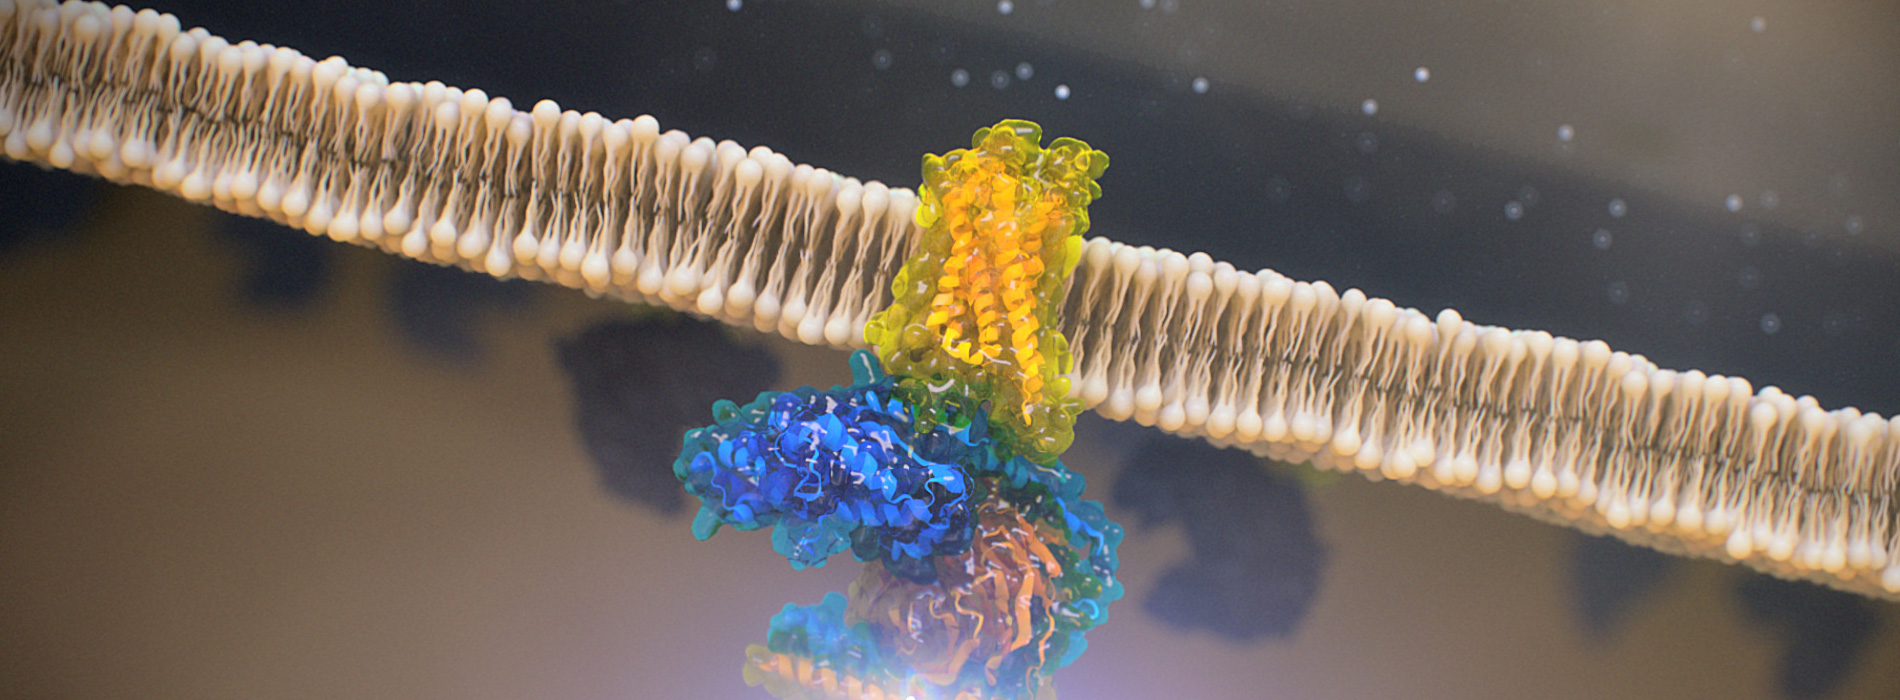 G-Protein Coupled Receptor, from Random42